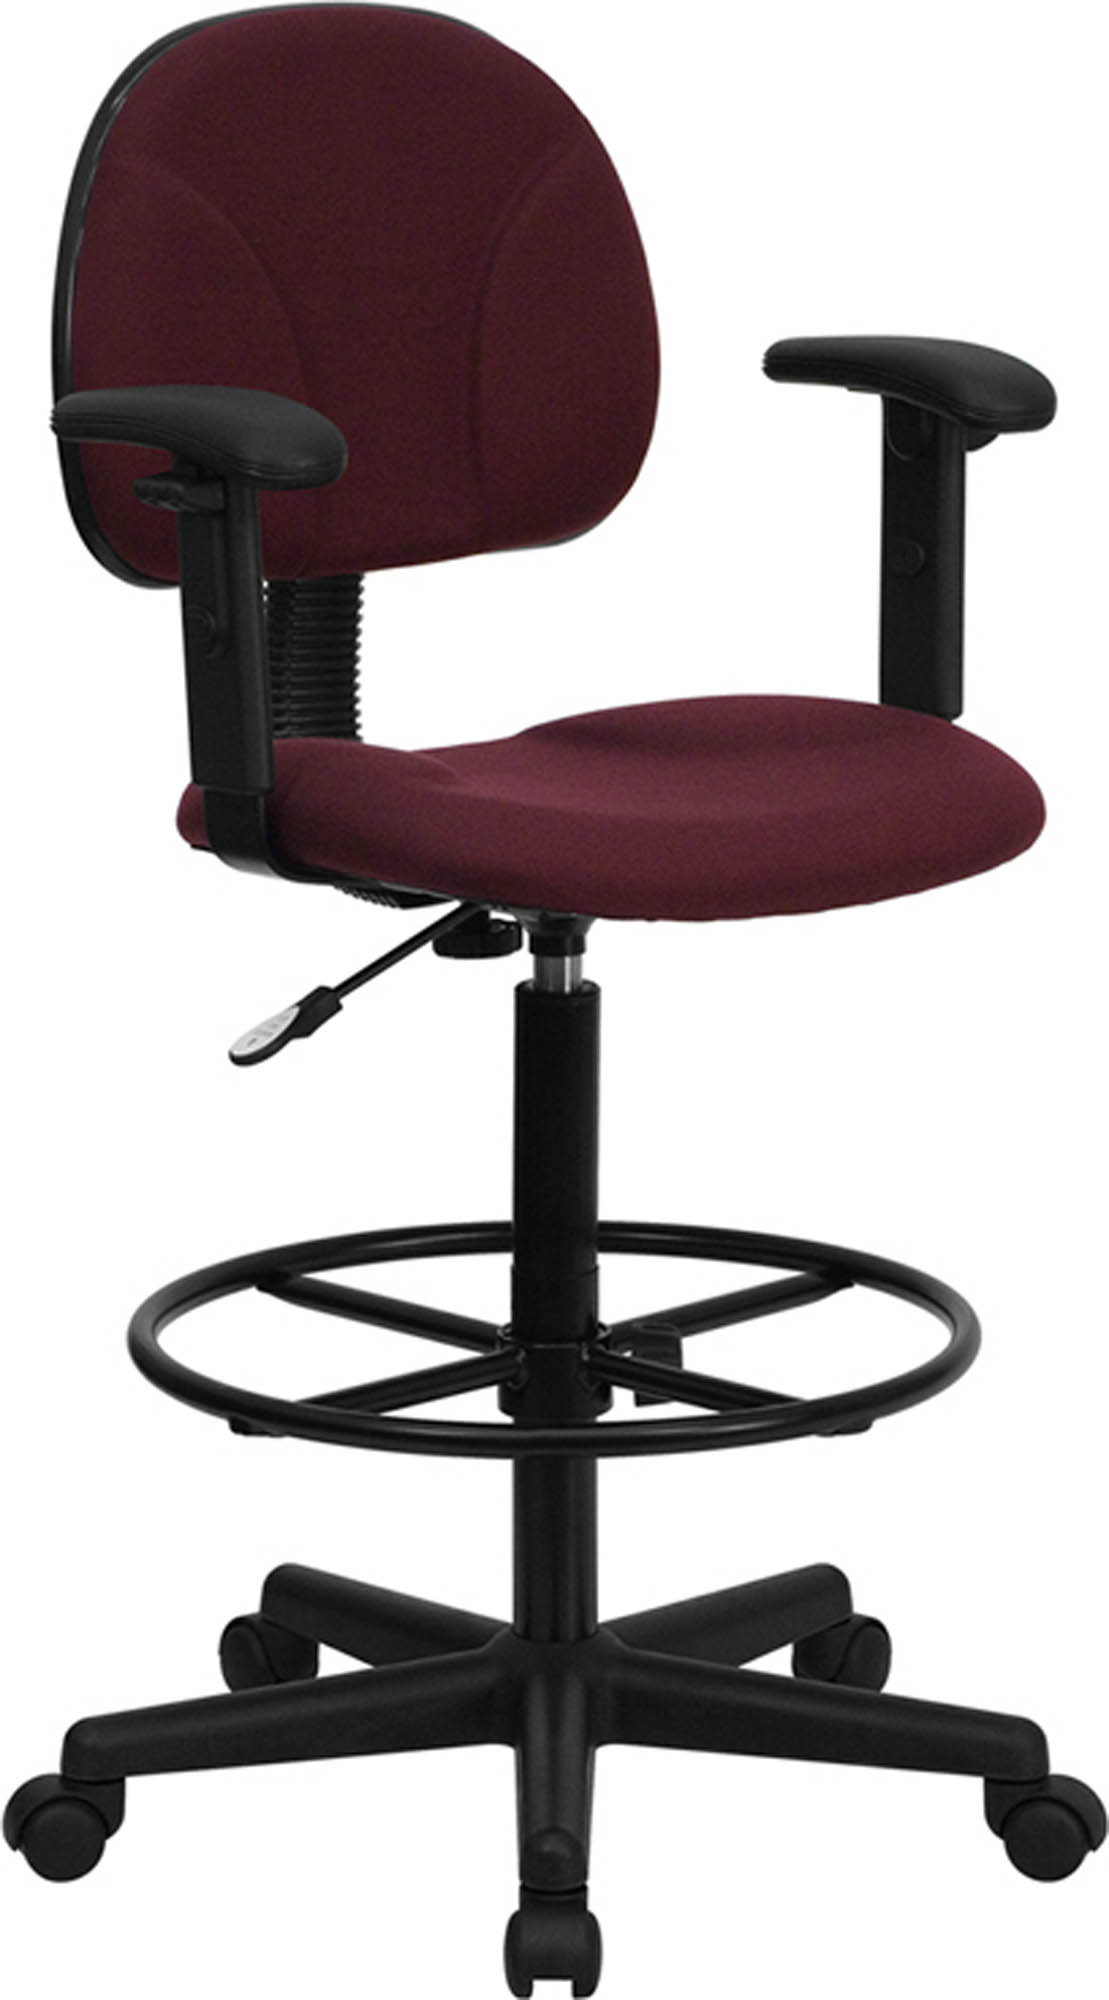 Offex BT-659-BY-ARMS-GG Burgundy Fabric Drafting Stool with Arms (Adjustable Range 26'-30.5'H or 22.5'-27'H)